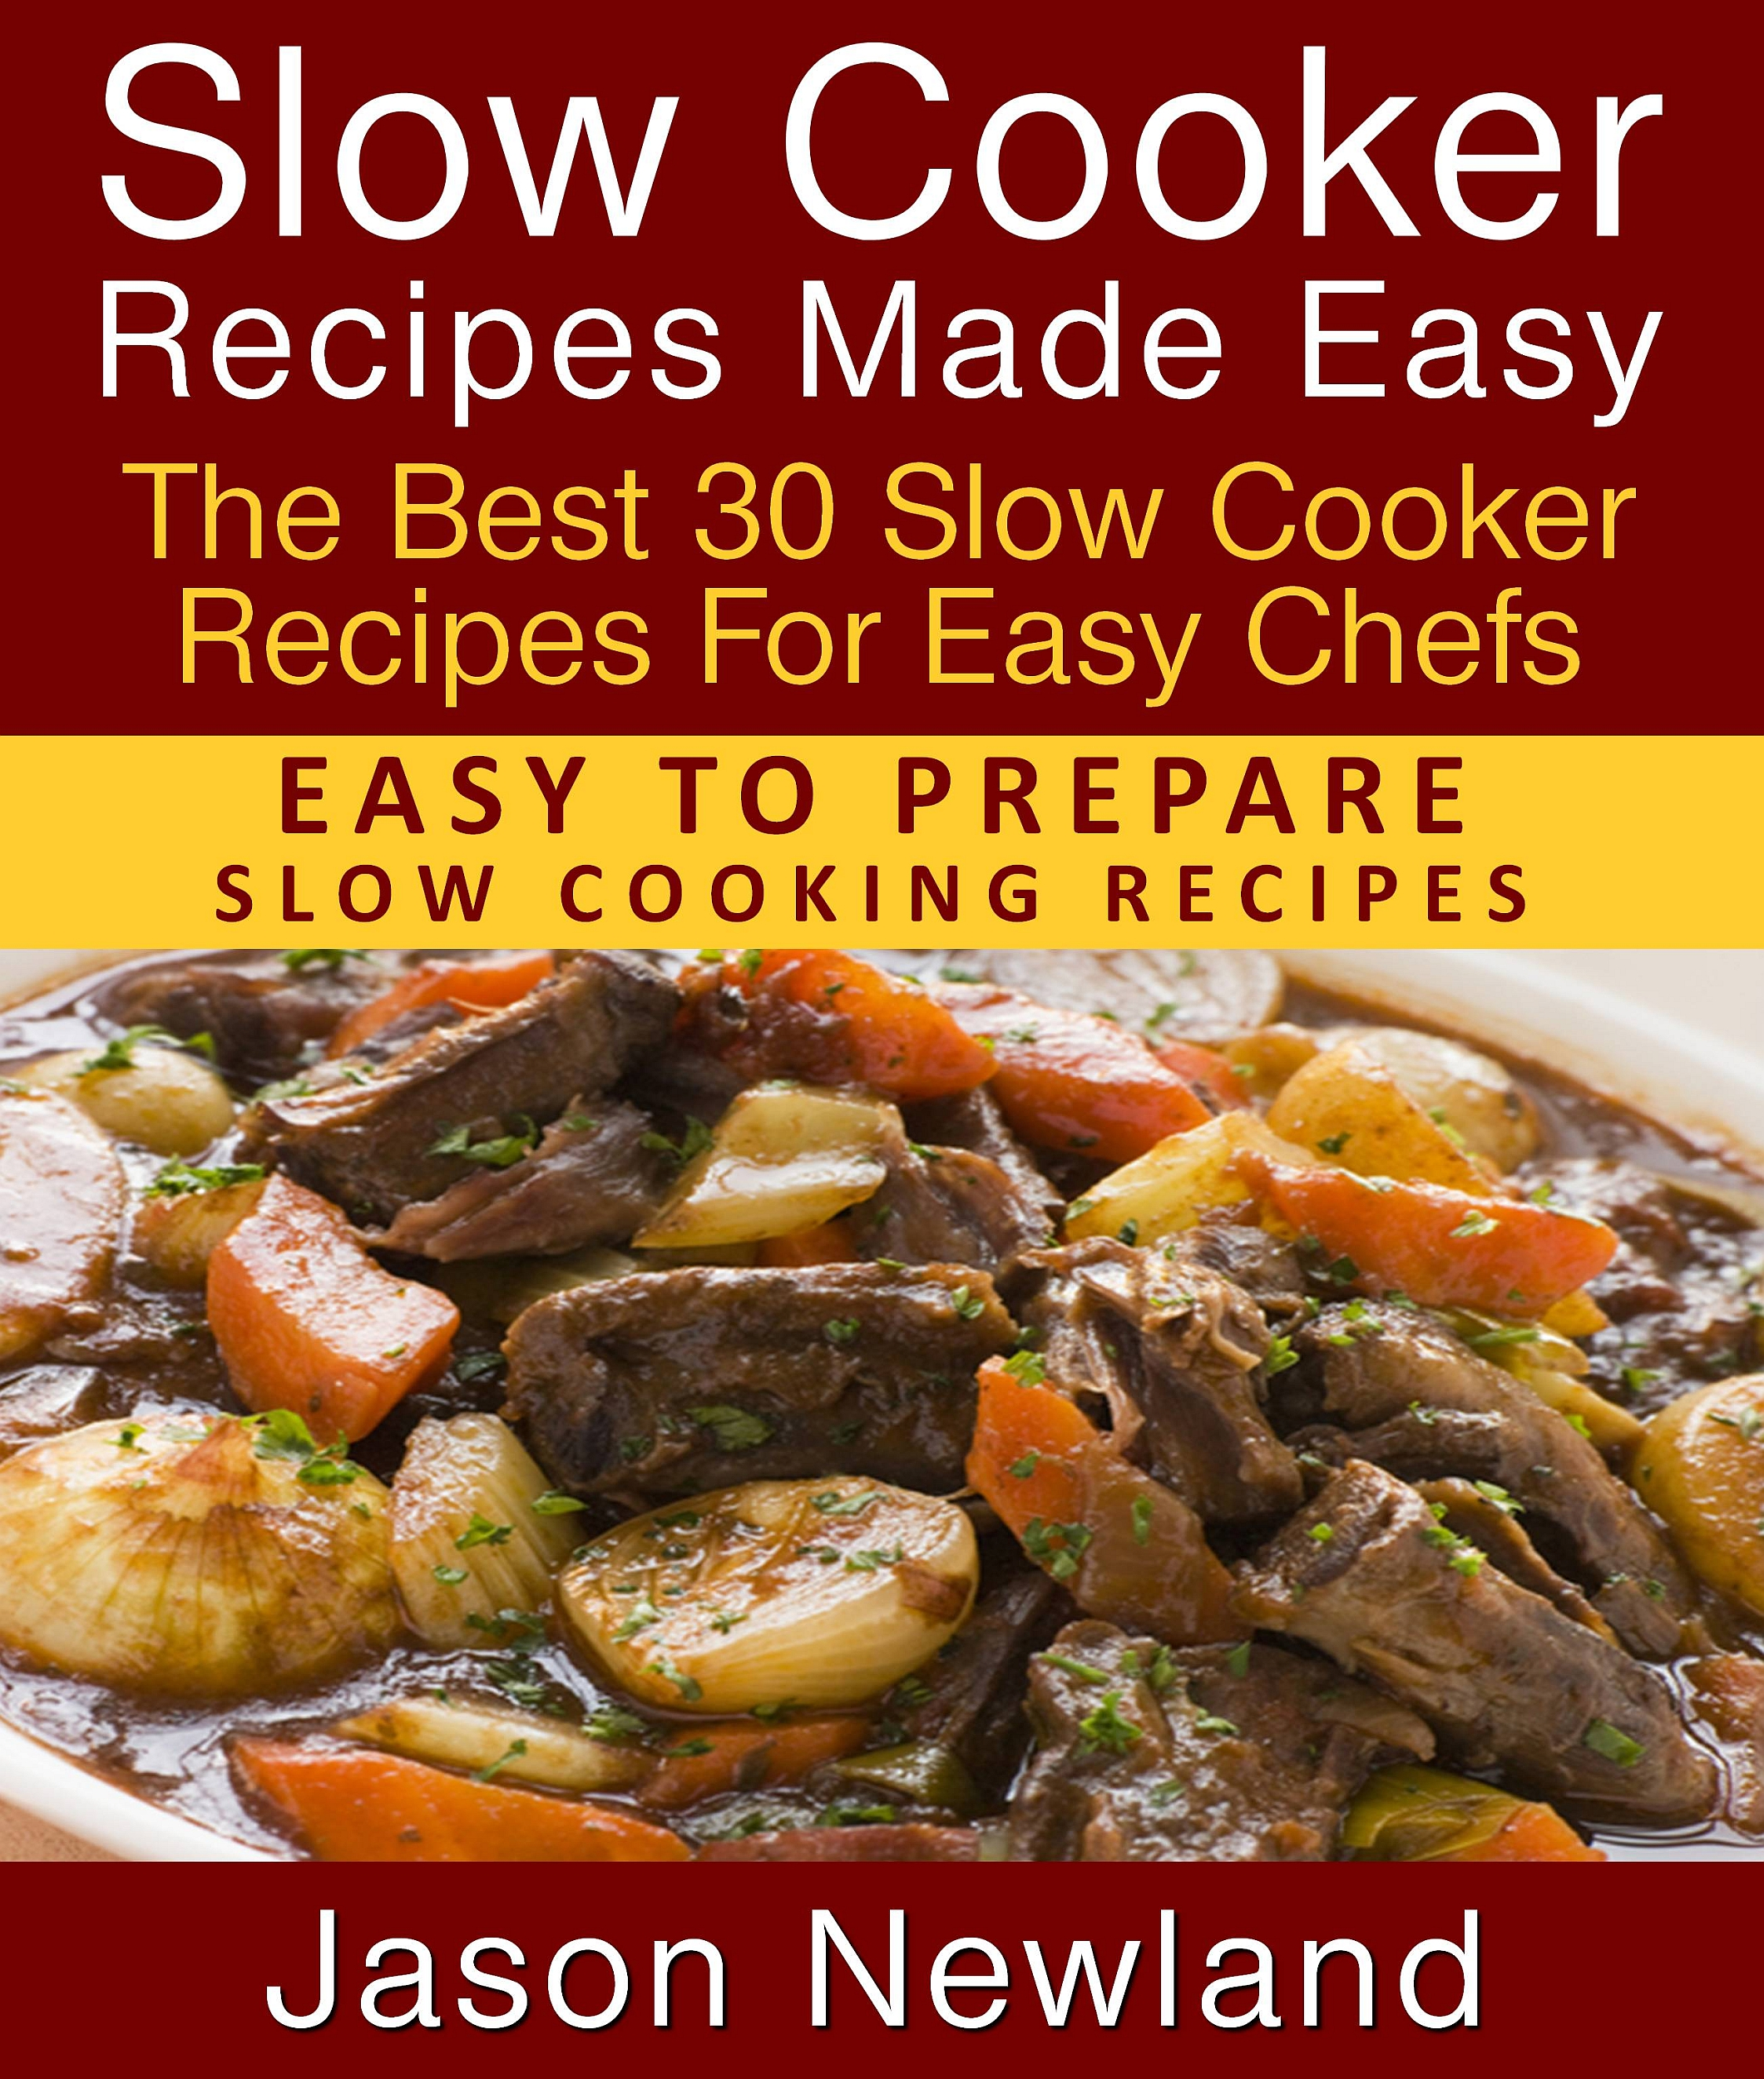 30 Minuten Küche Easy Cooking Slow Cooker Recipes Made Easy The Best 30 Slow Cooker